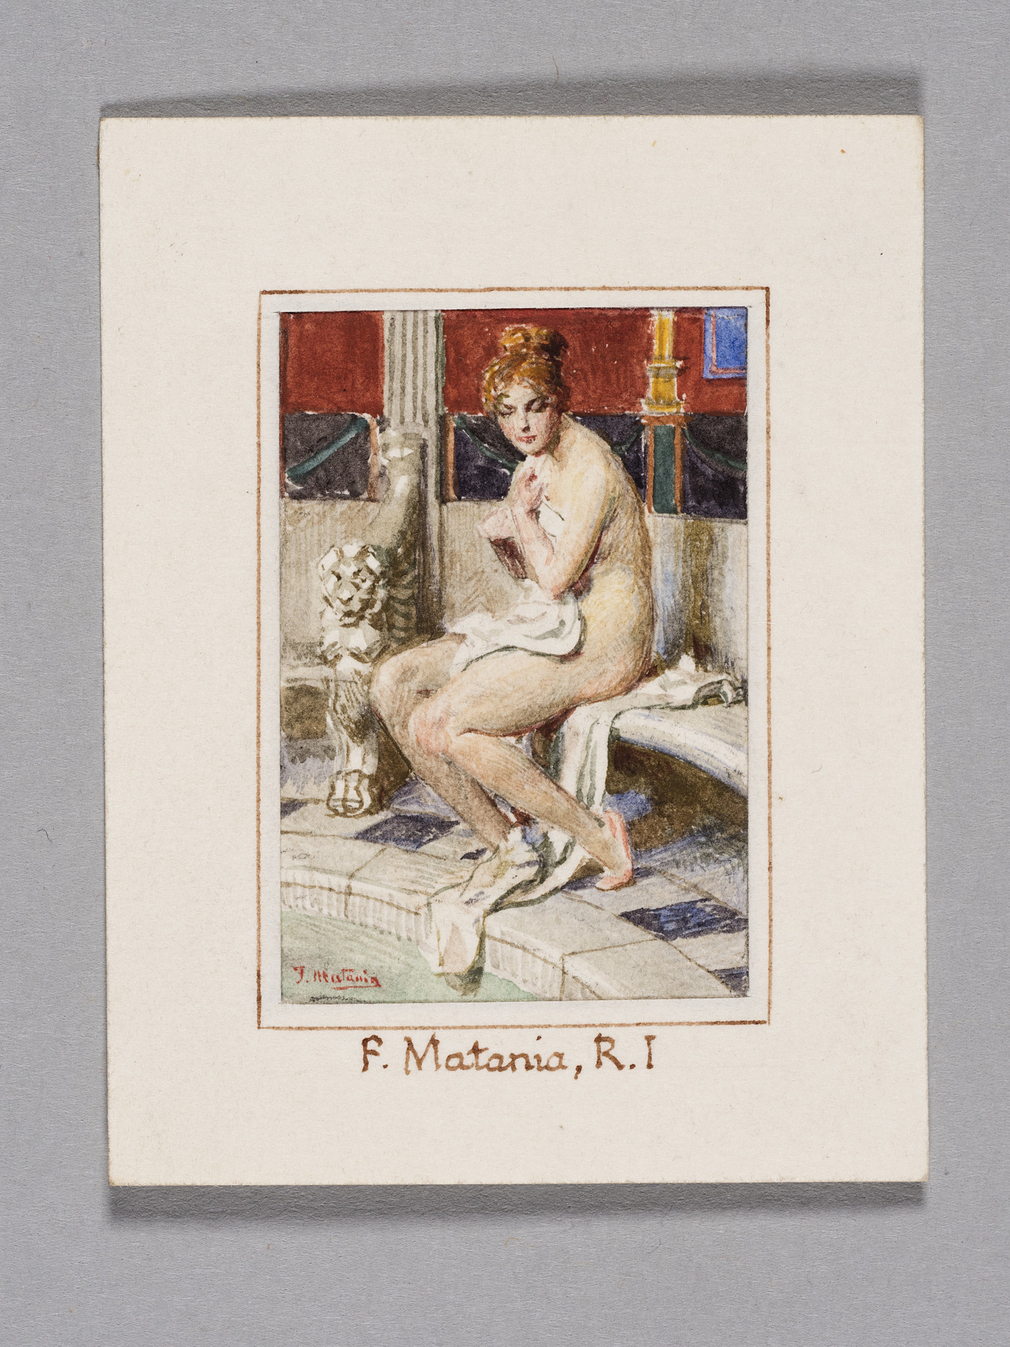 Full length nude female figure, seated on curving marble seat, the circular bath to L at floor level.